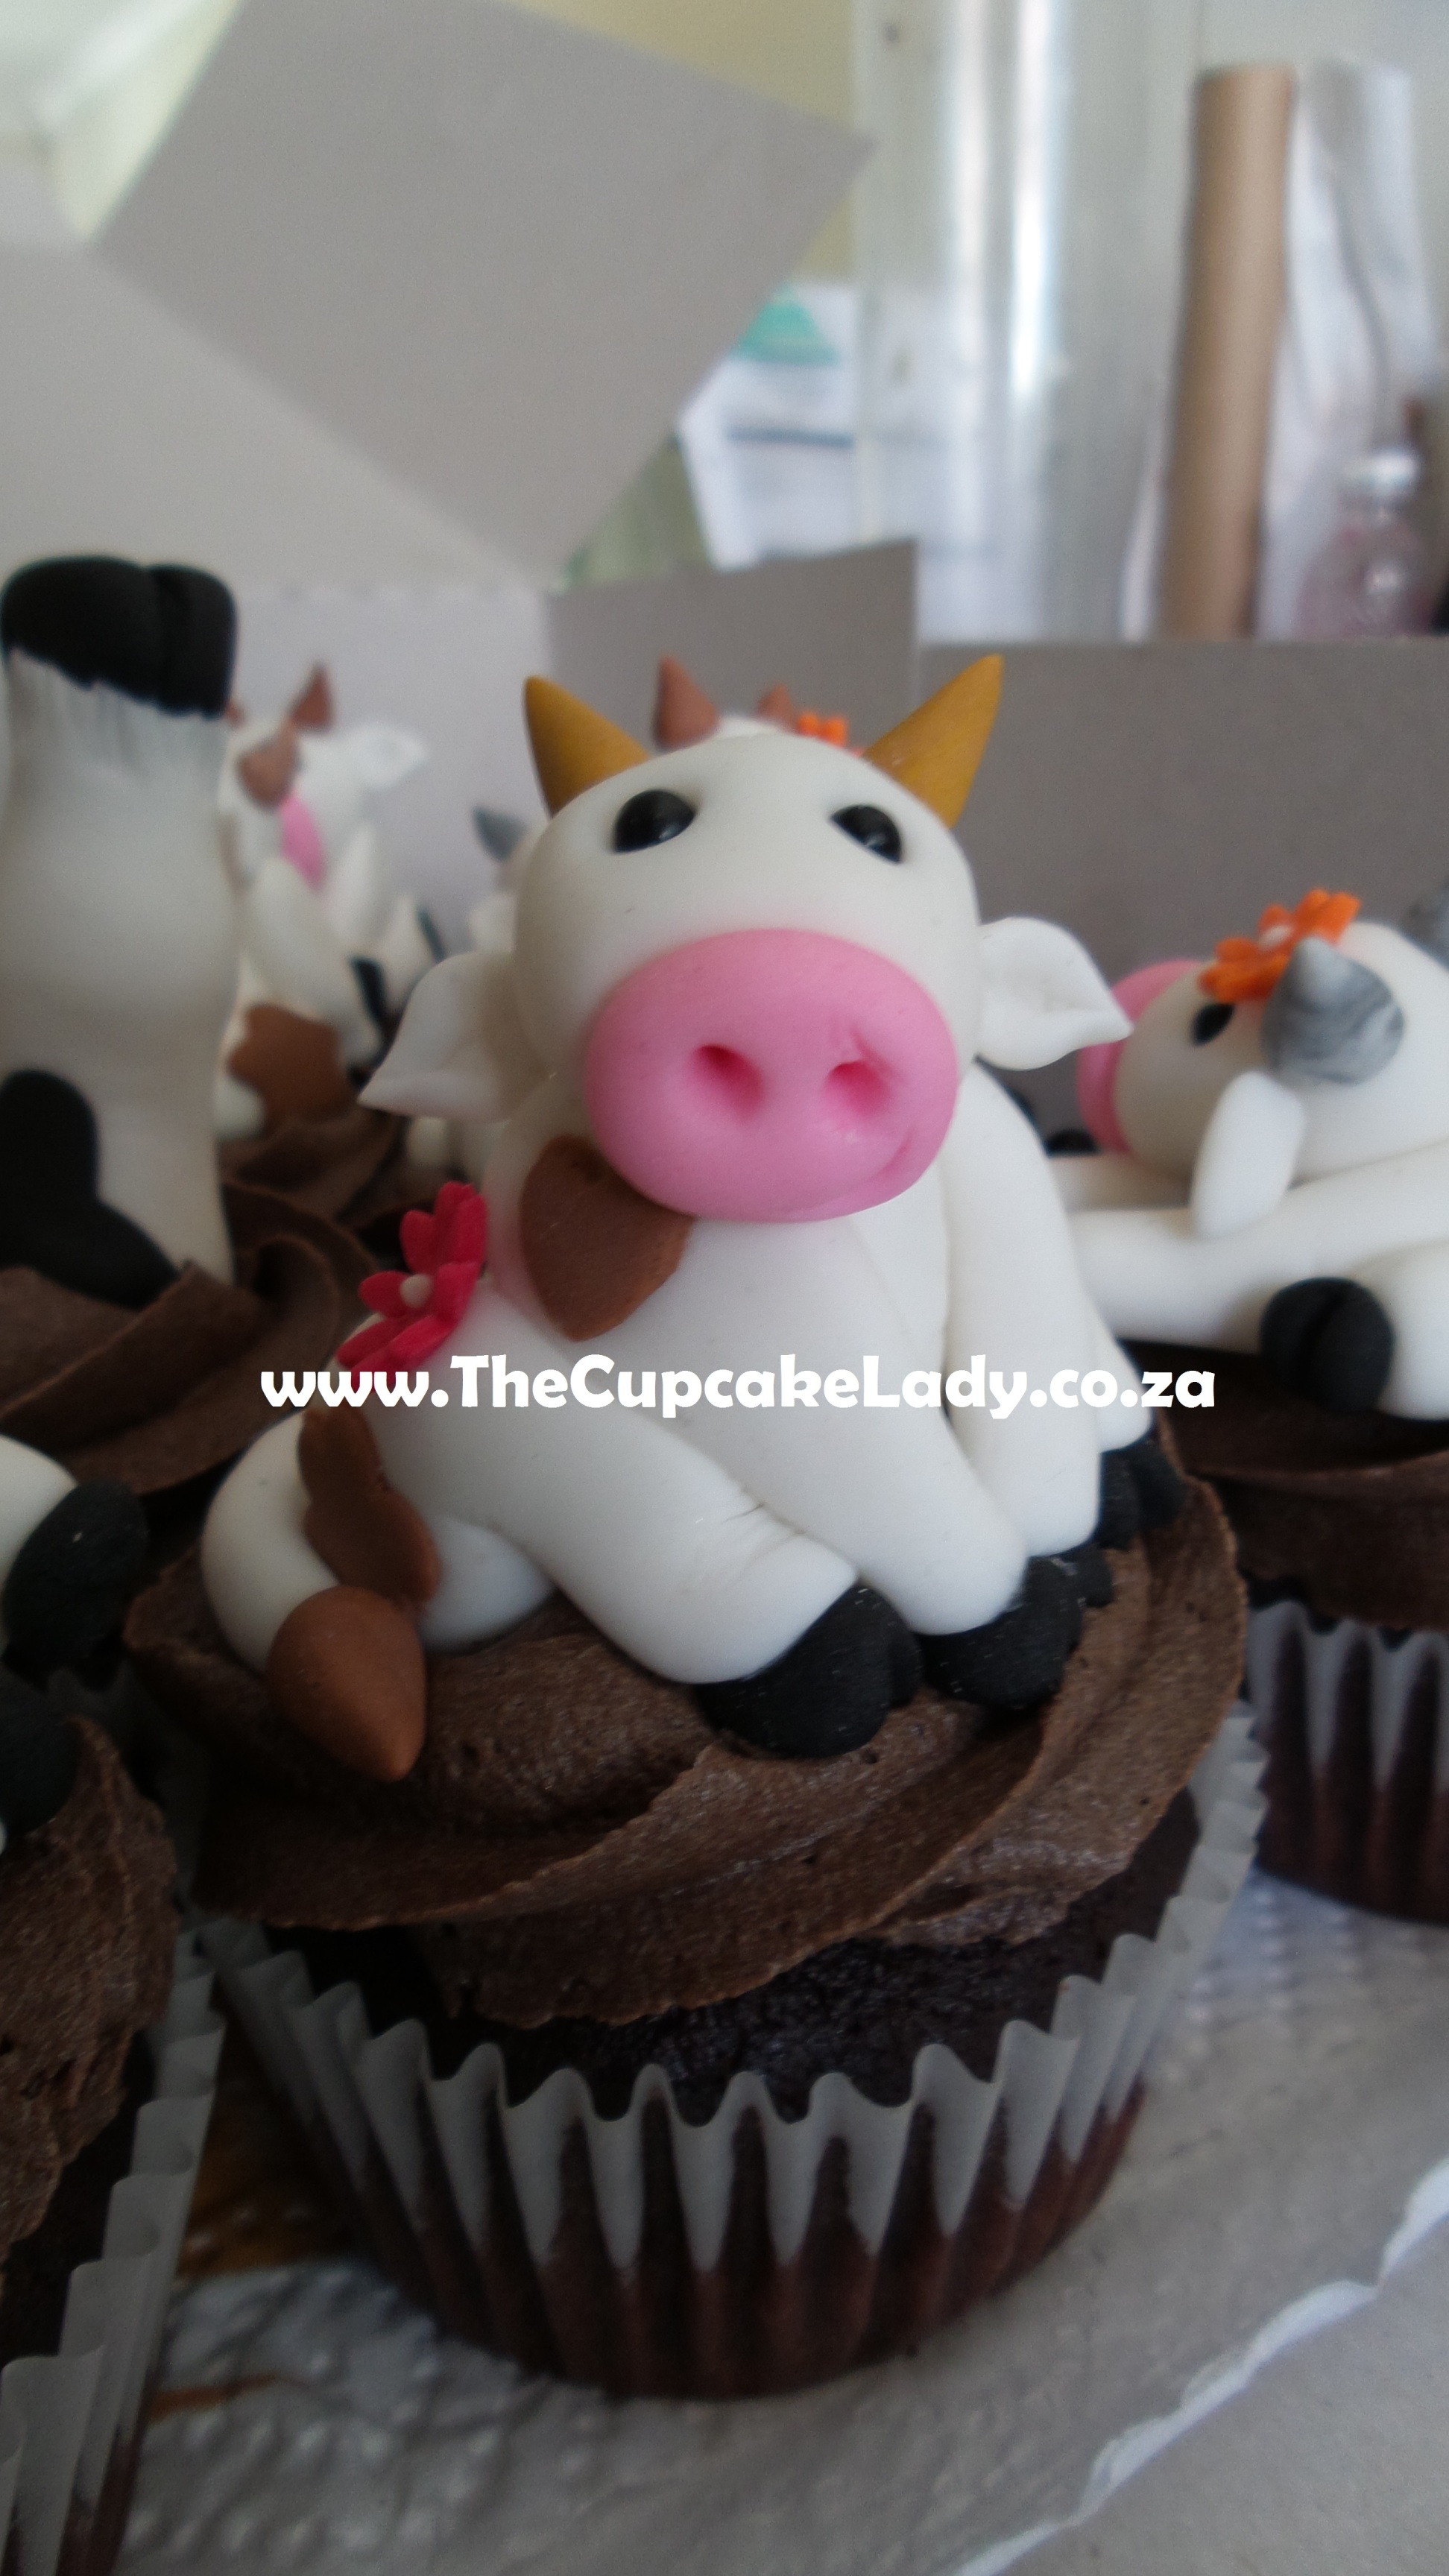 The Icing Artist Cow Cake